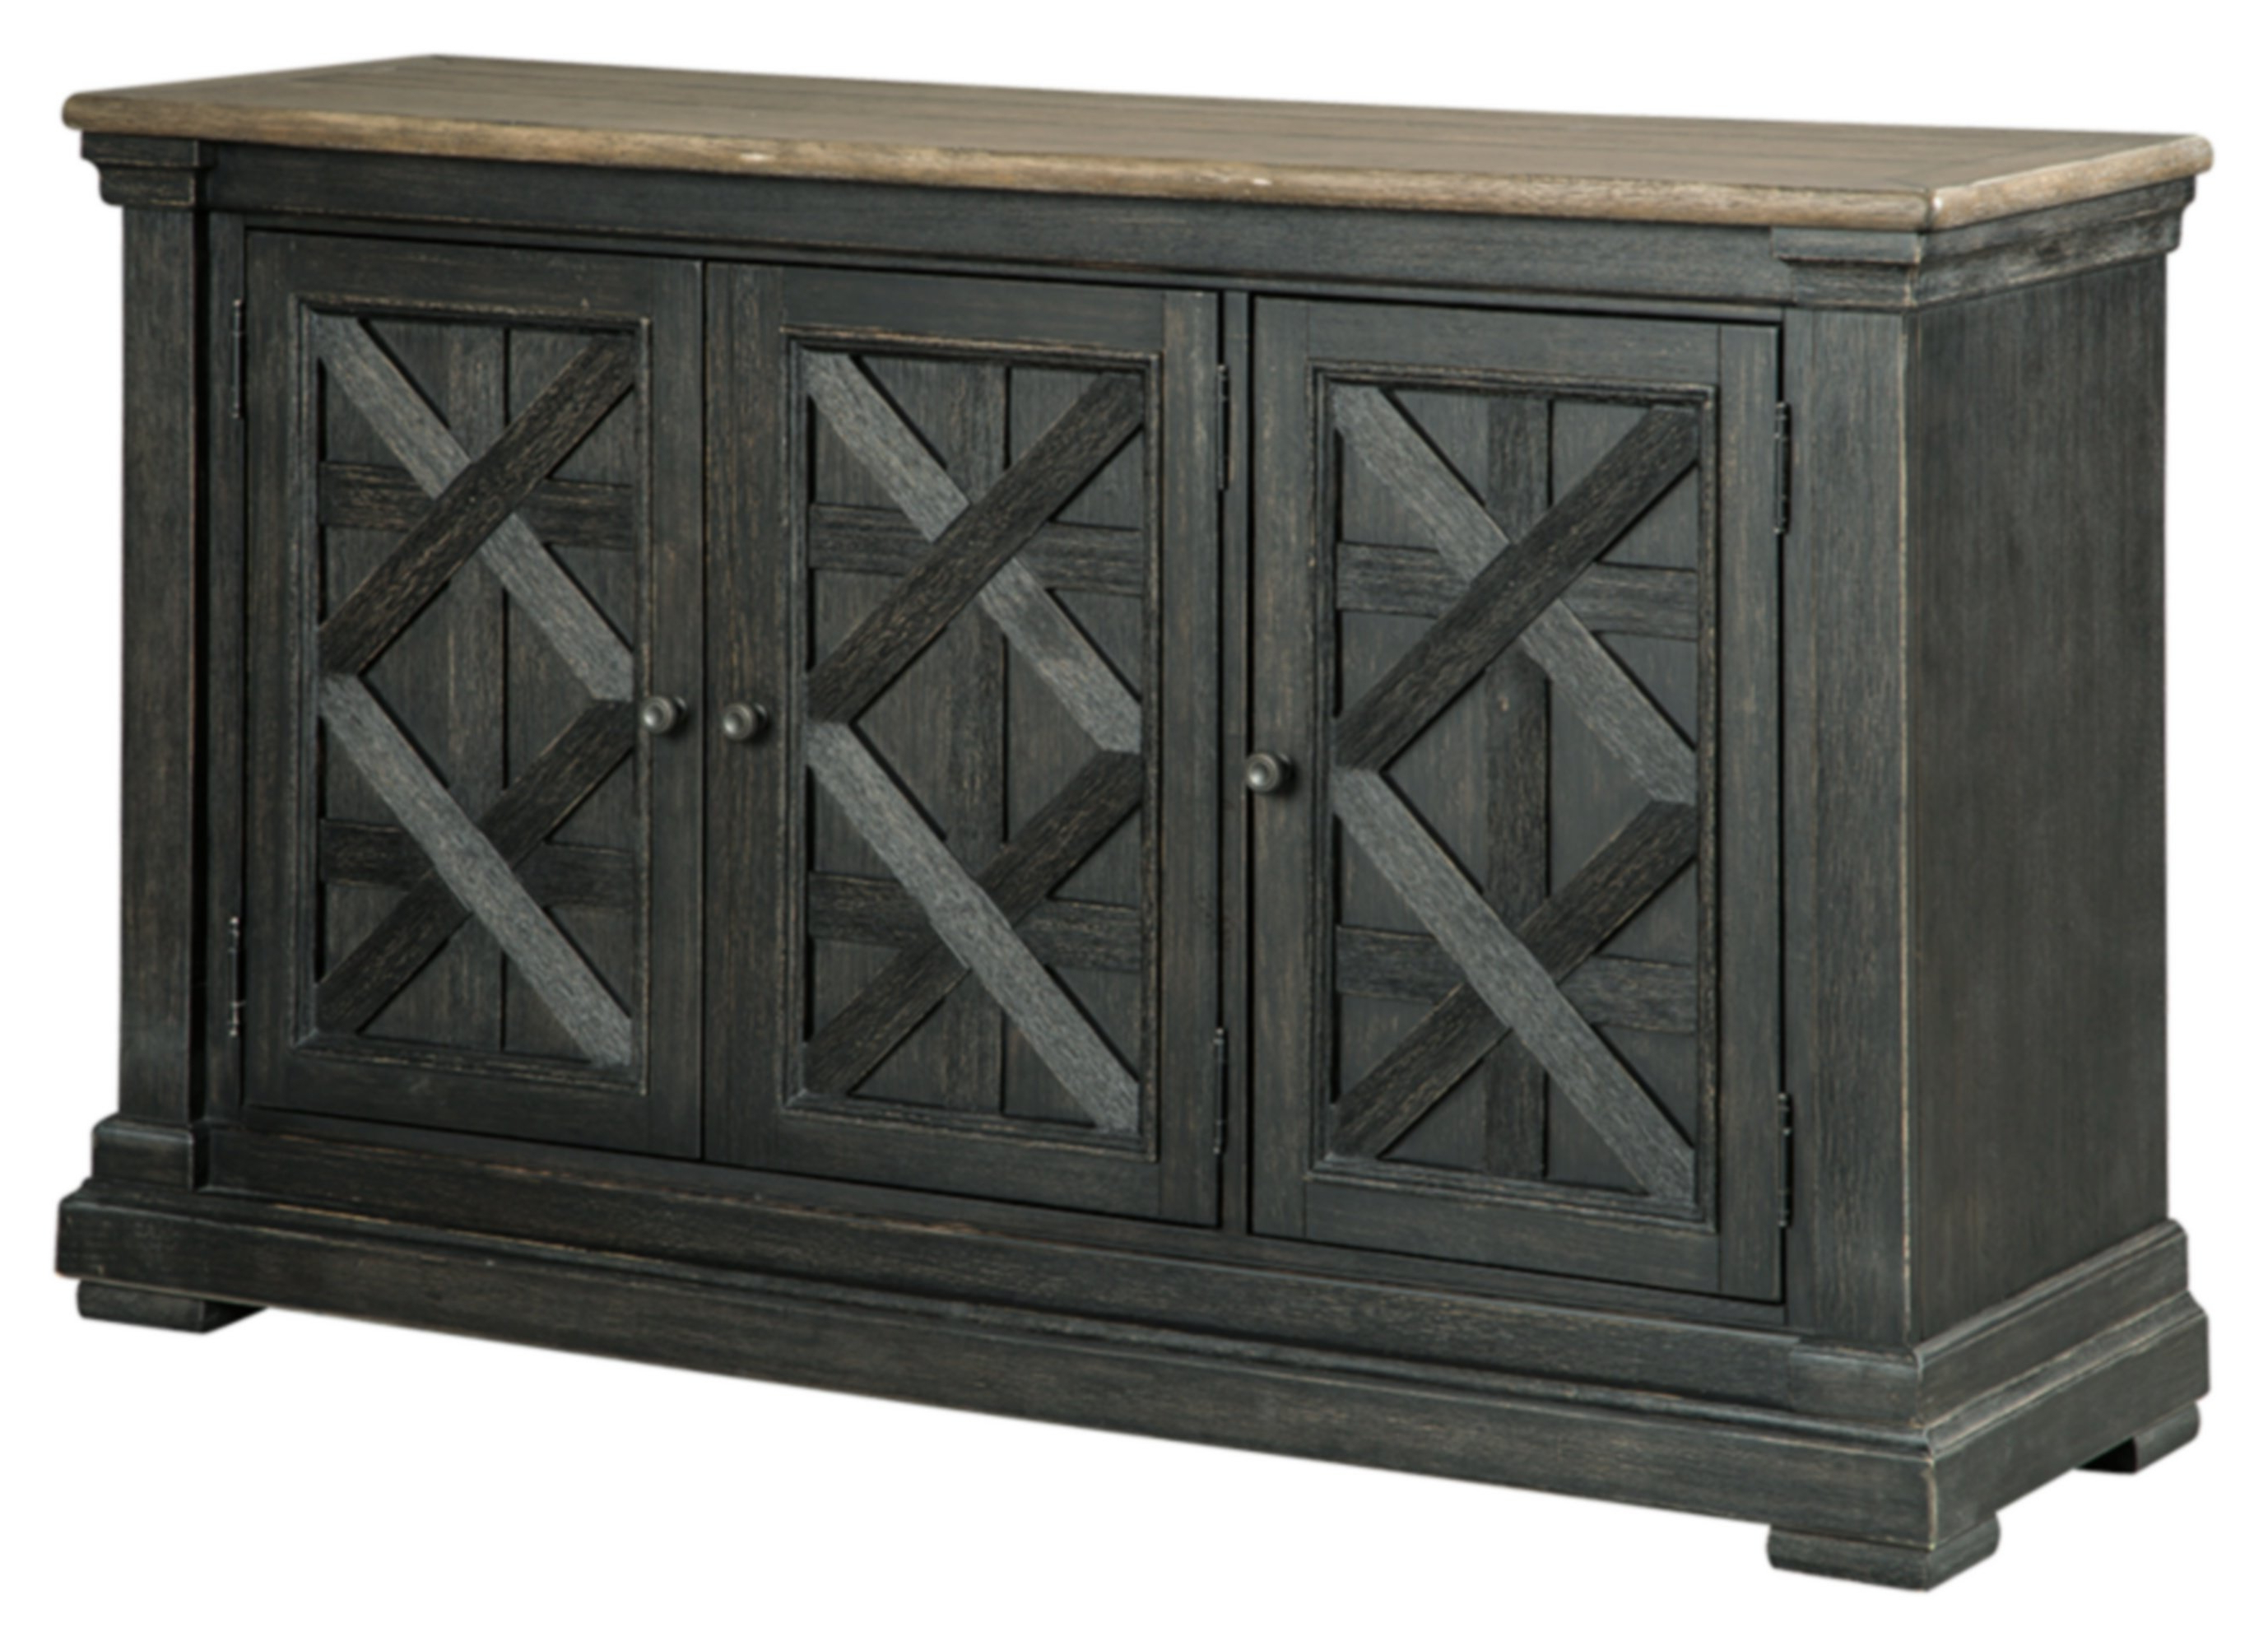 2019 Canora Grey Ventanas Sideboard Intended For Massillon Sideboards (View 1 of 20)